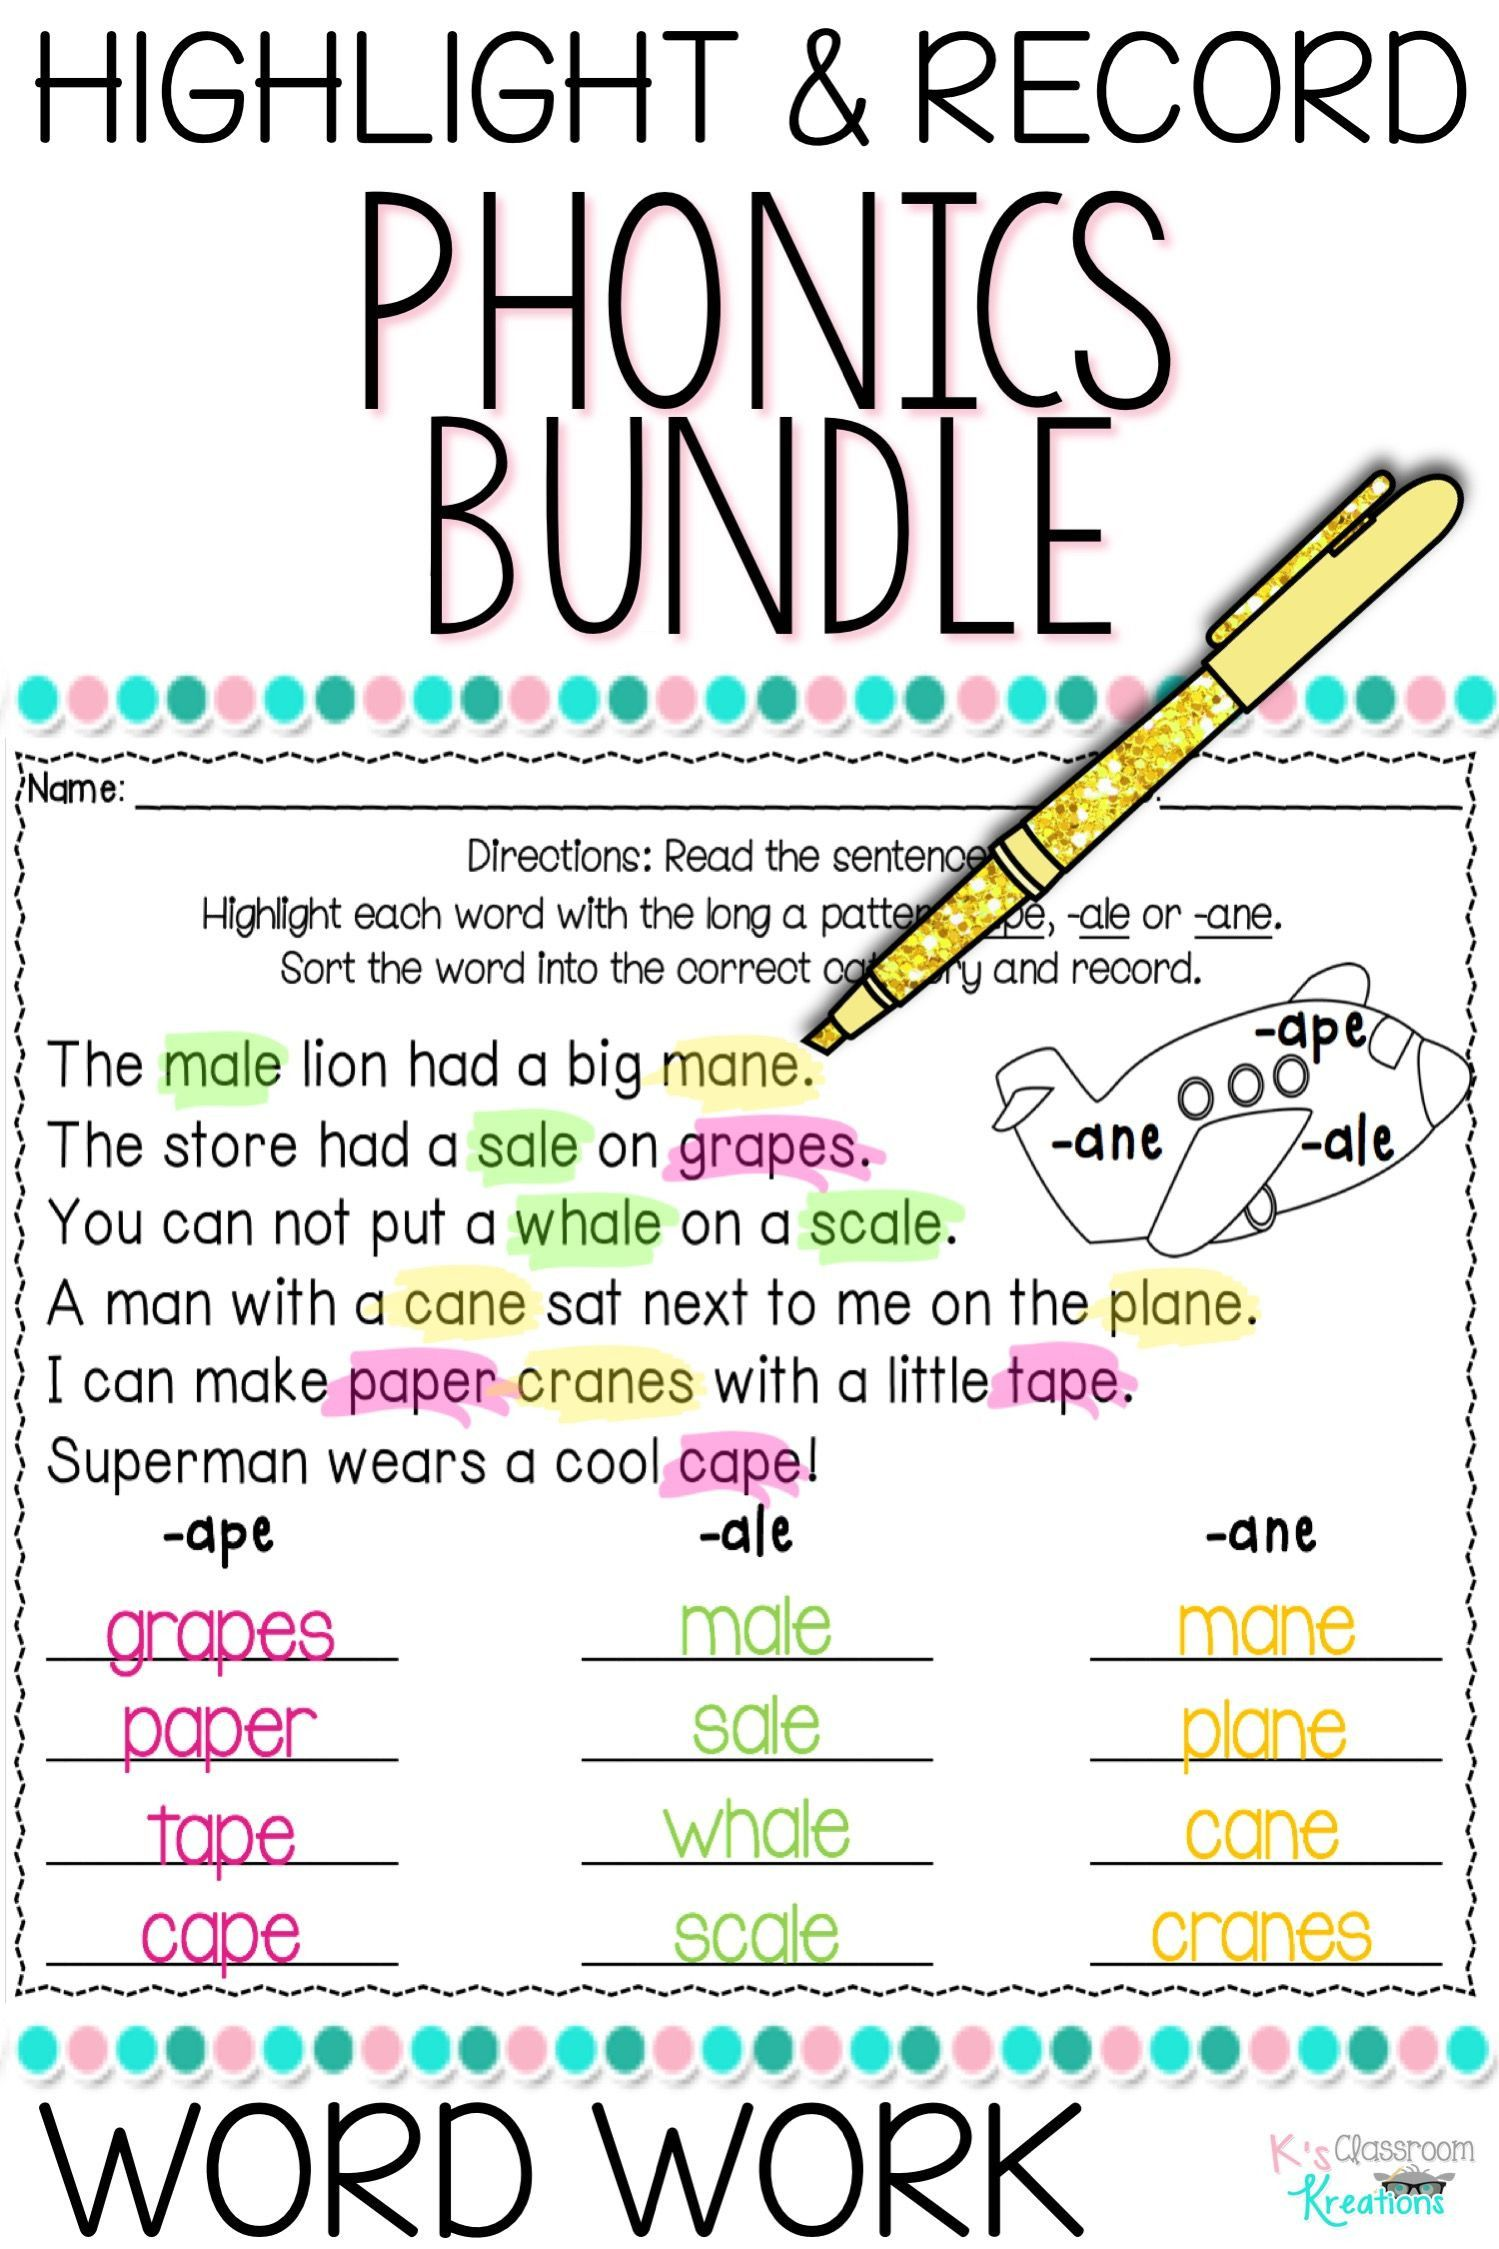 Second Grade Phonics Worksheets In 2020 Word Work Phonics Phonics Worksheets